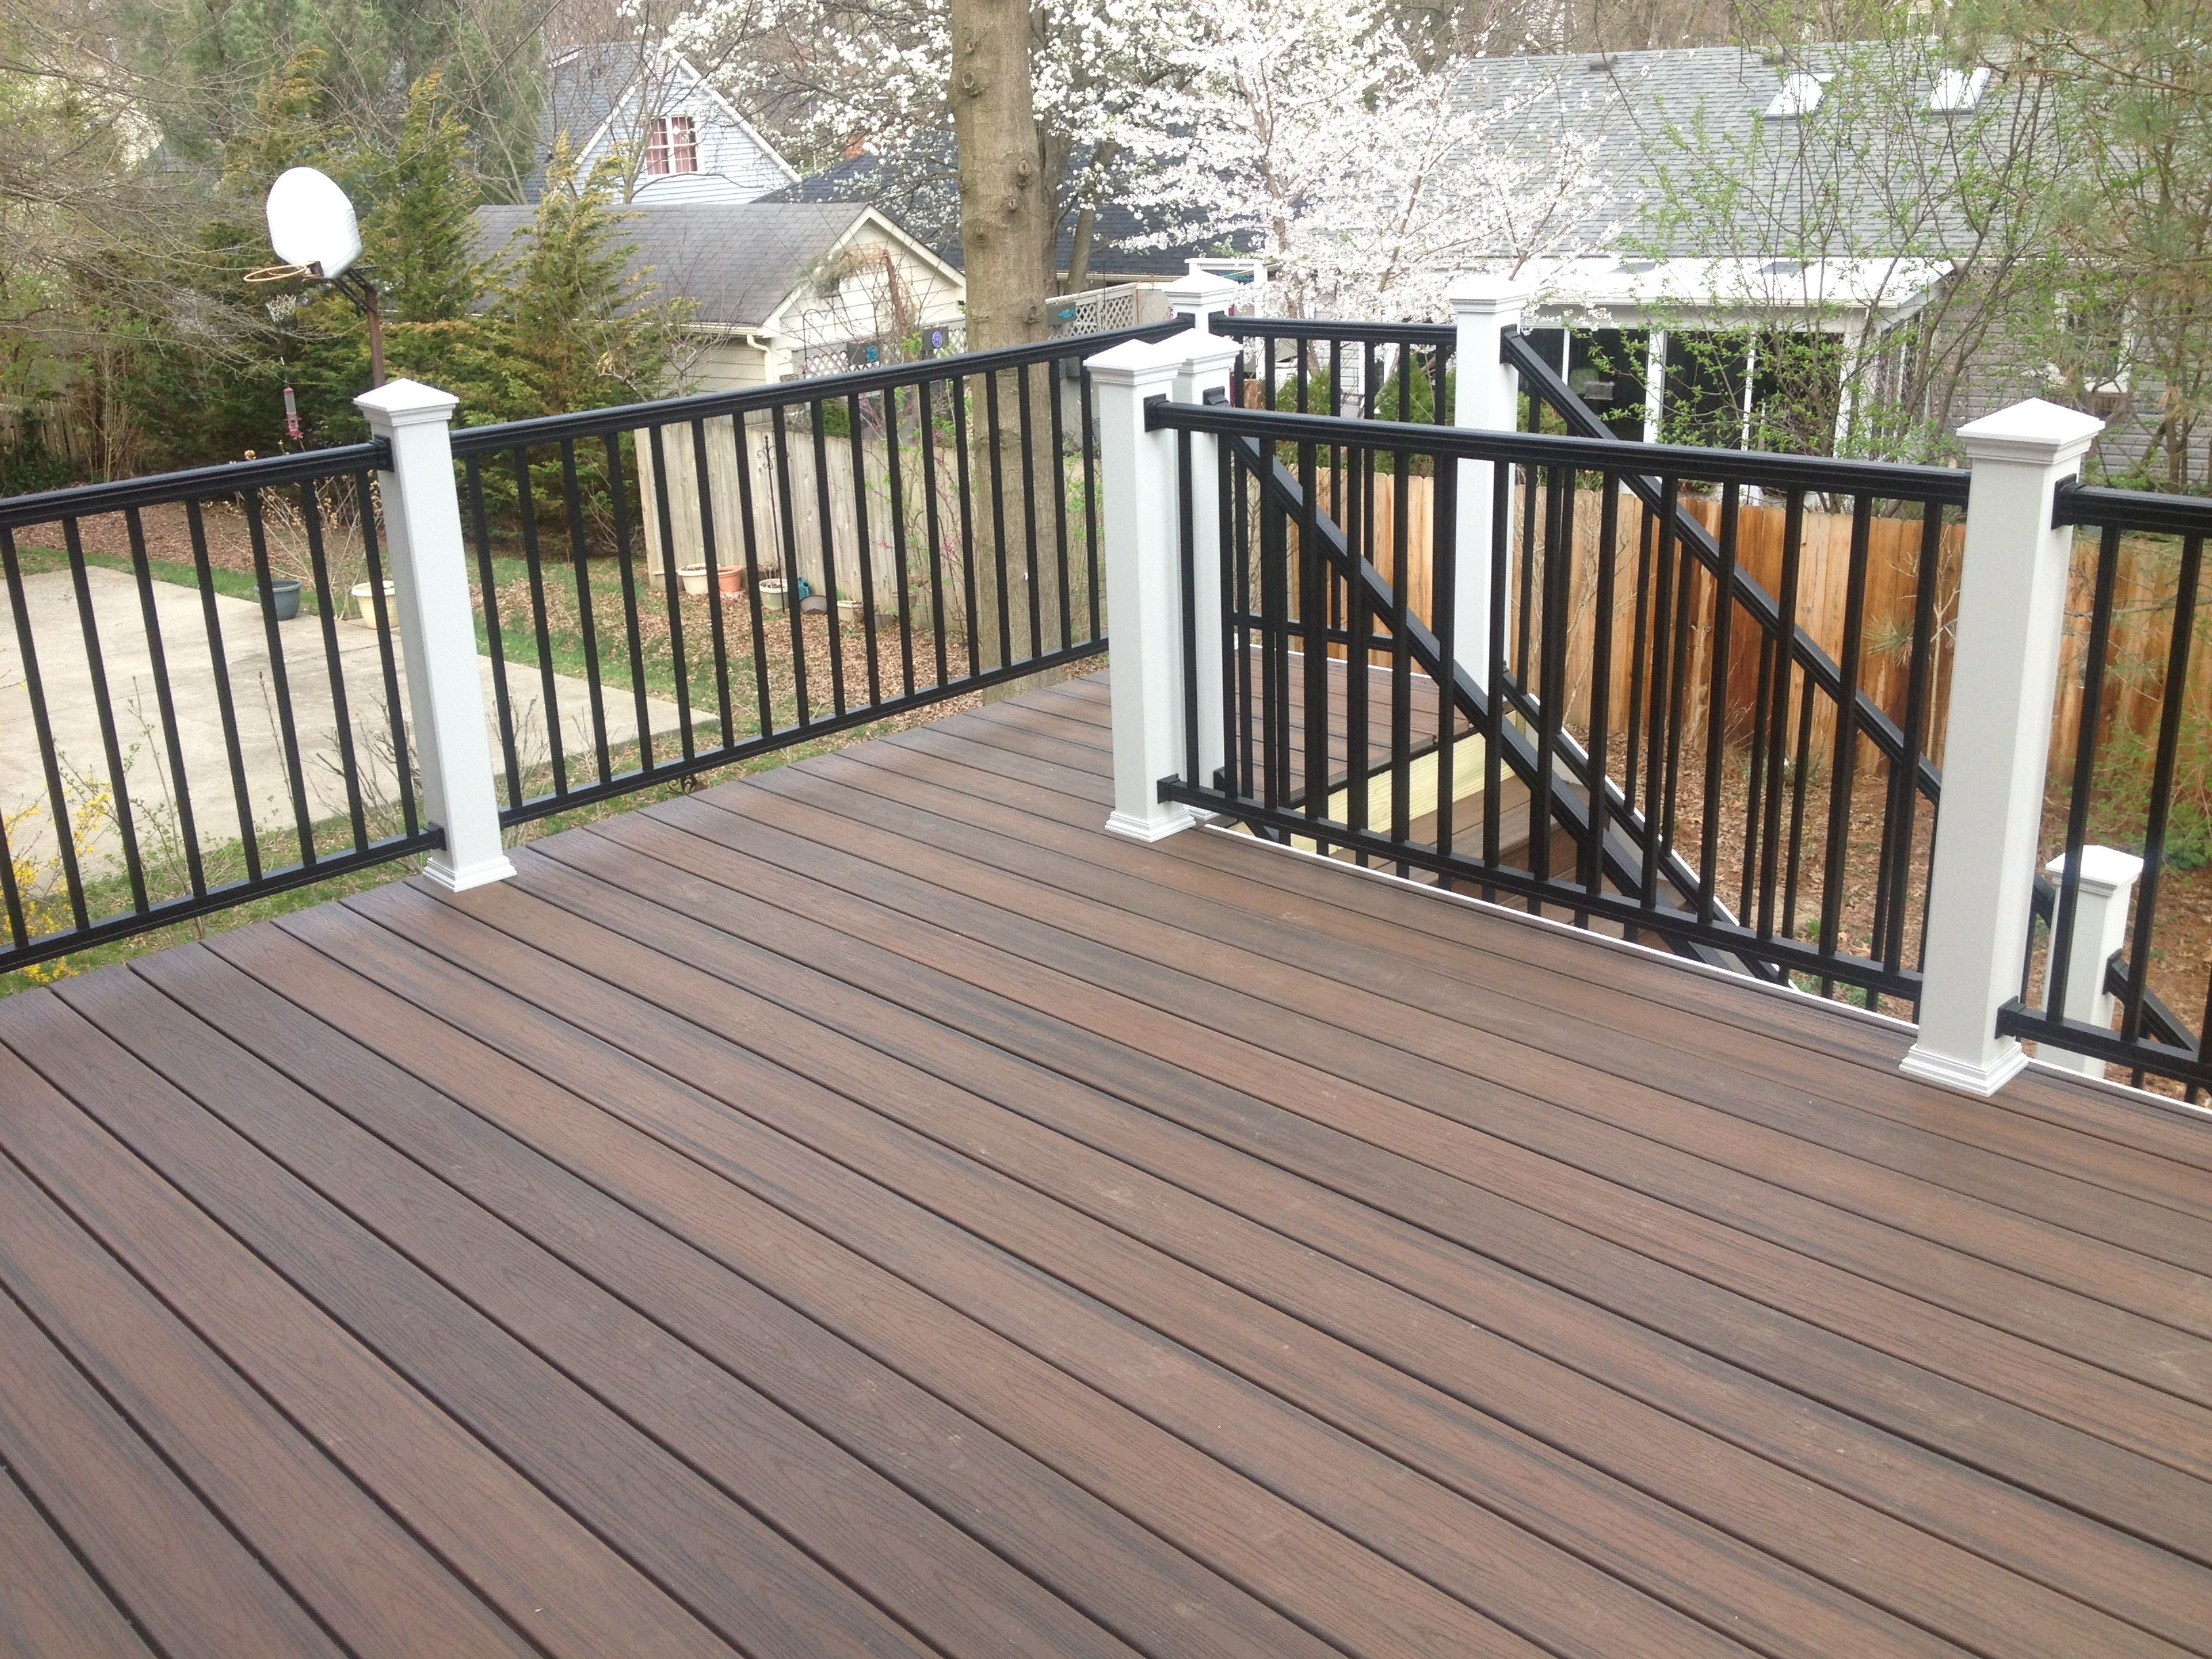 Trex Decking Colors >> The 25+ best Trex decking colors ideas on Pinterest | Trex decking, Trex composite decking and ...